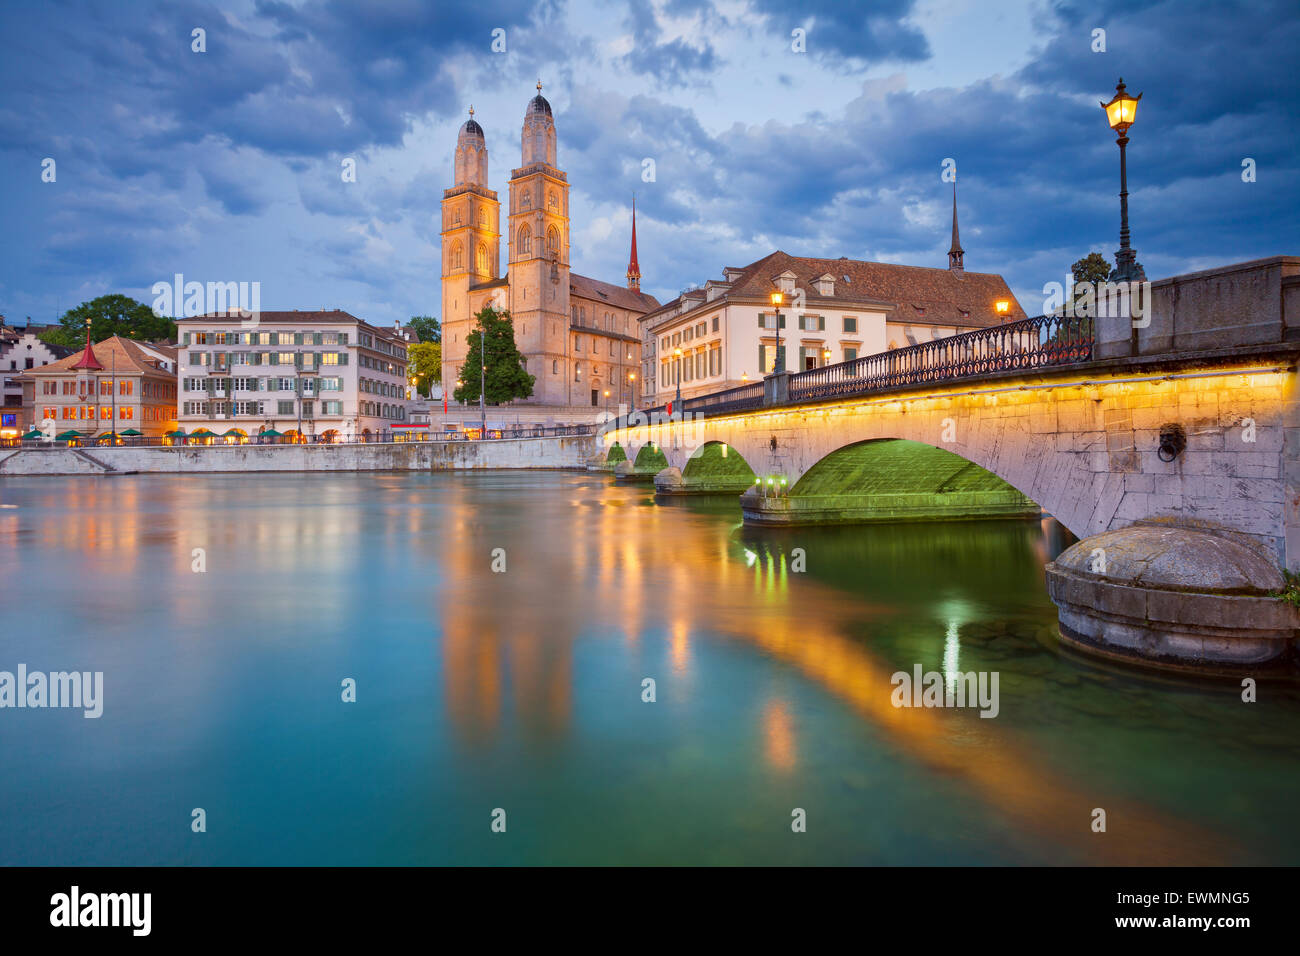 Zurich. Image of Zurich with Grossmünster during twilight. - Stock Image